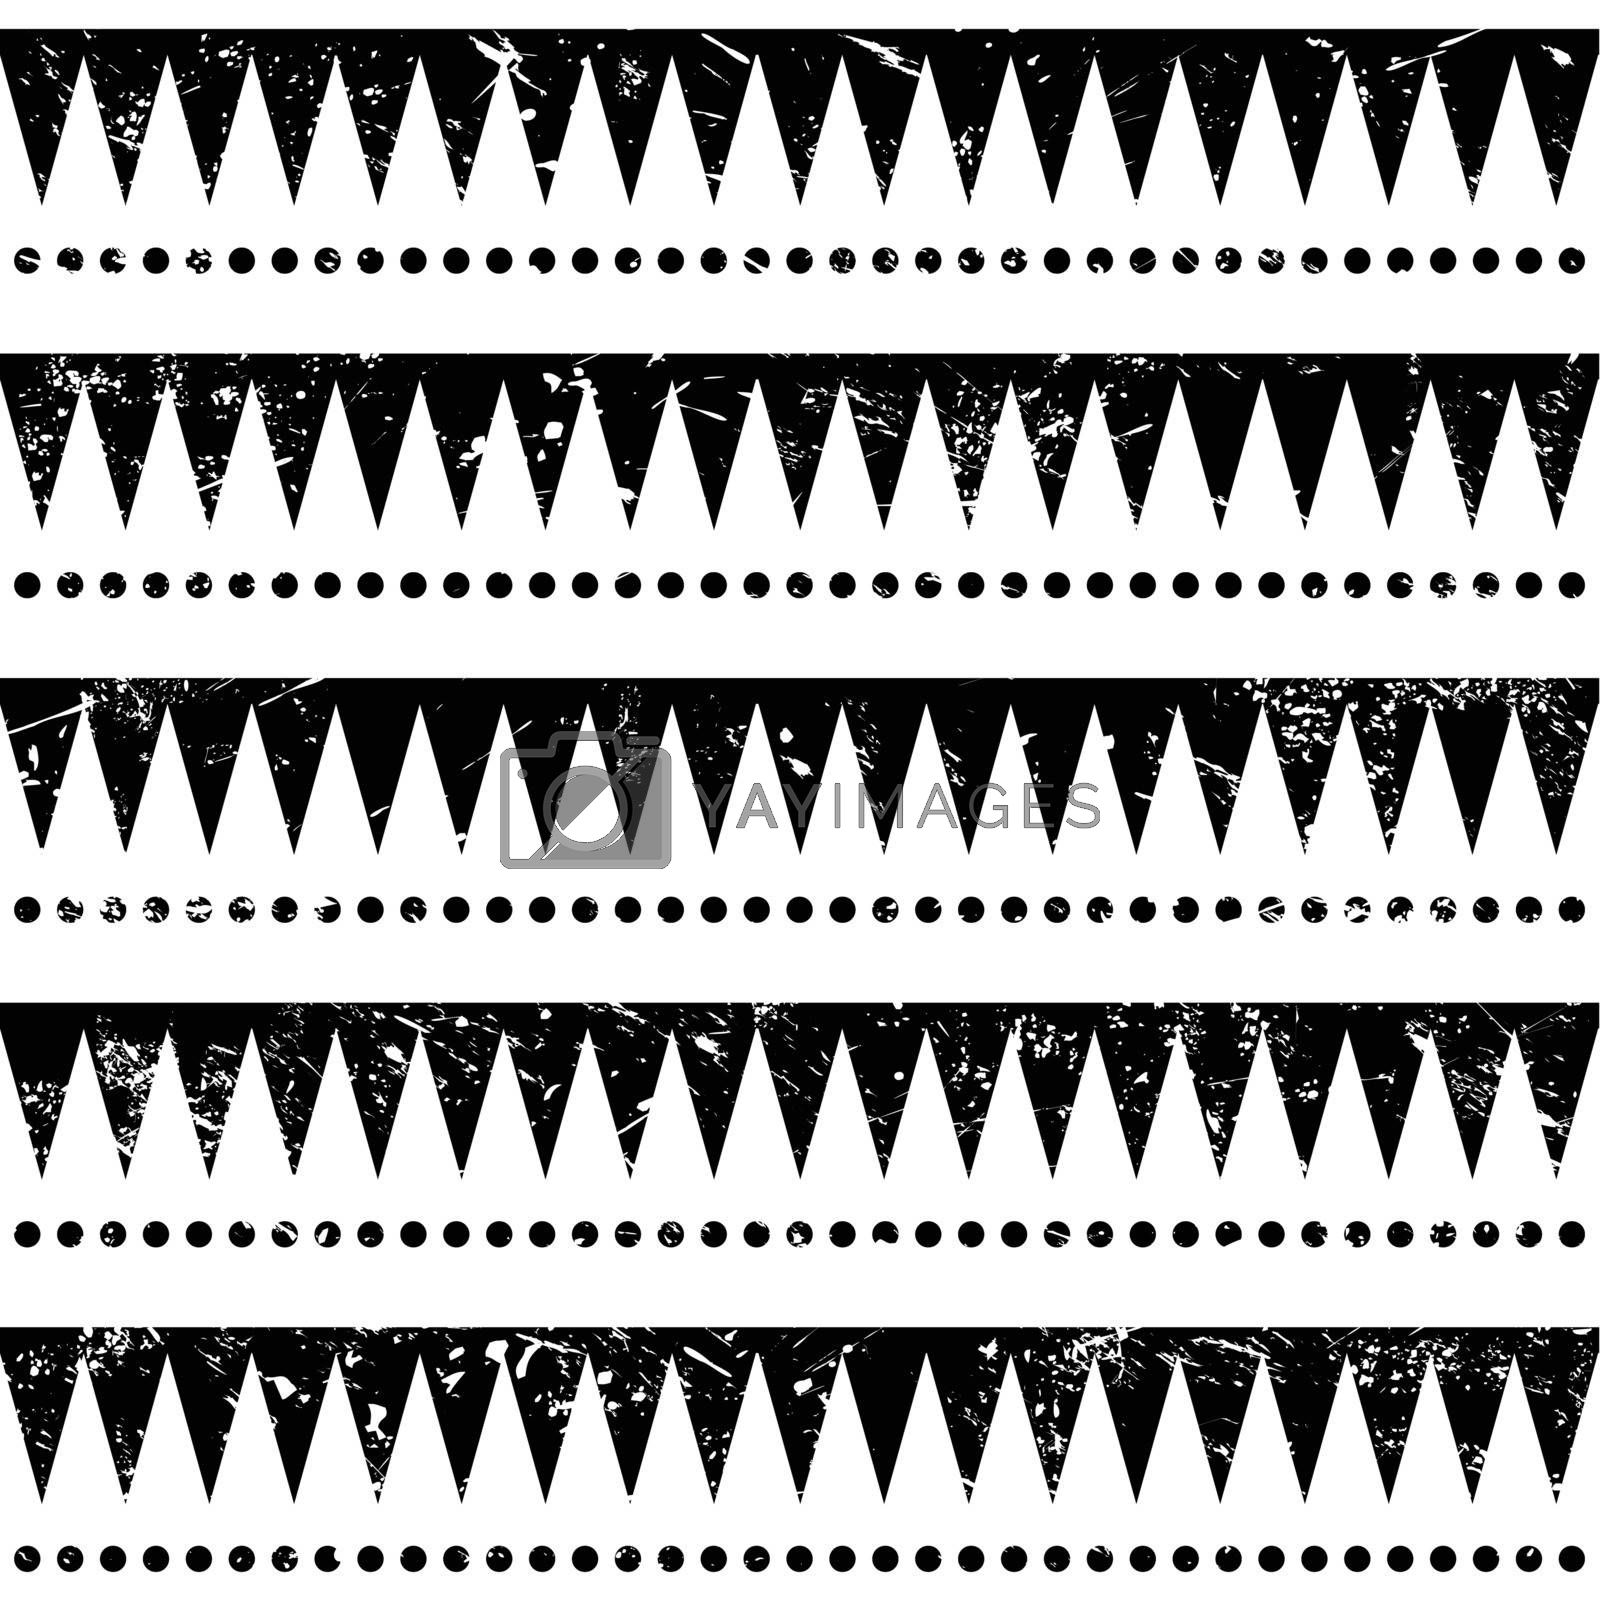 Vector seamless aztec ornament, vintage ethnic pattern in black and white